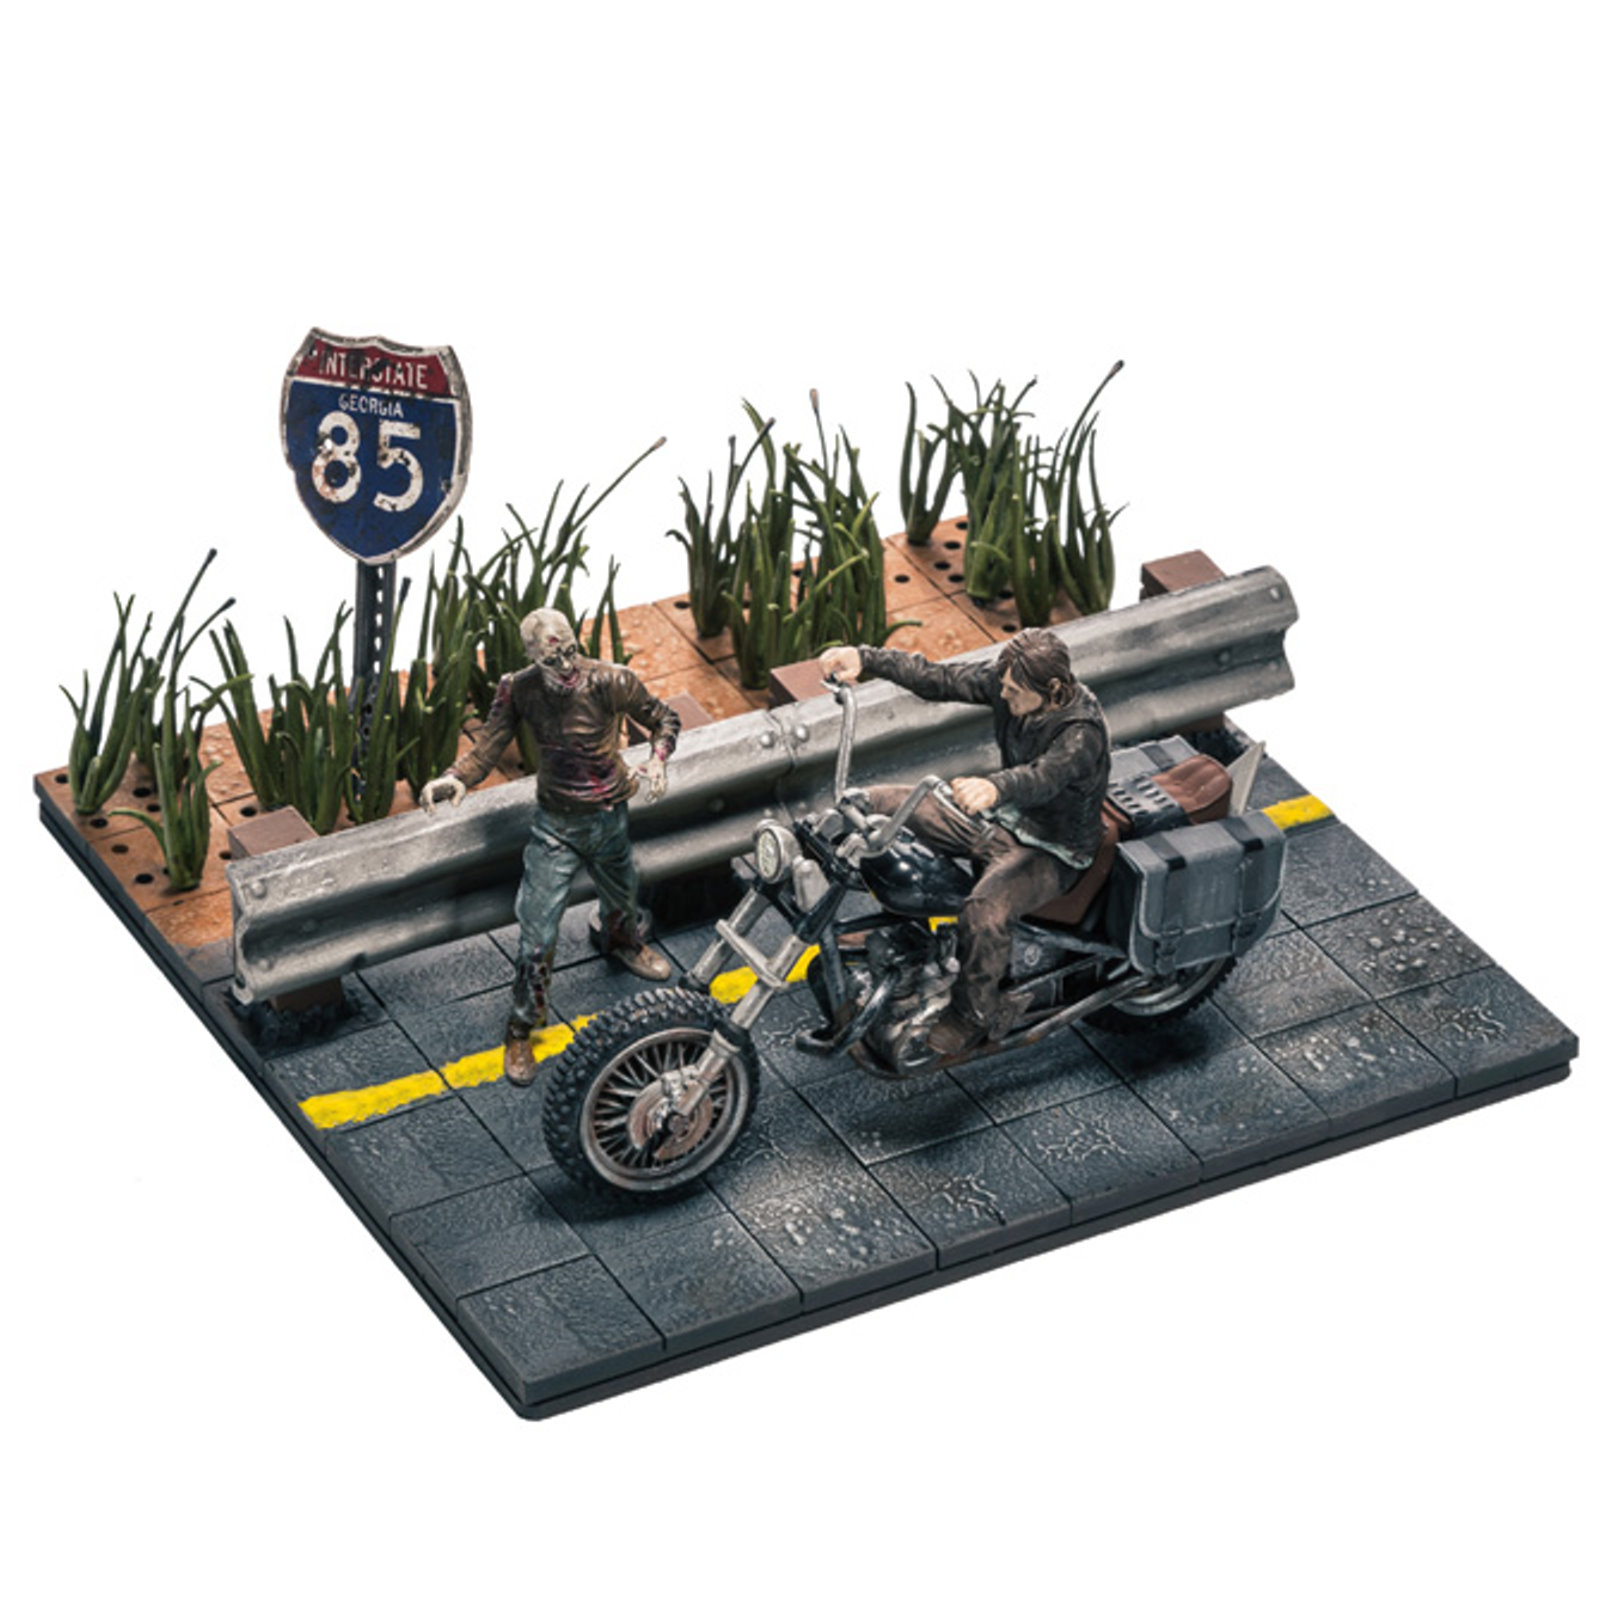 THE WALKING DEAD (TV) BUILDING SETS - DARYL DIXON WITH CHOPPER SET